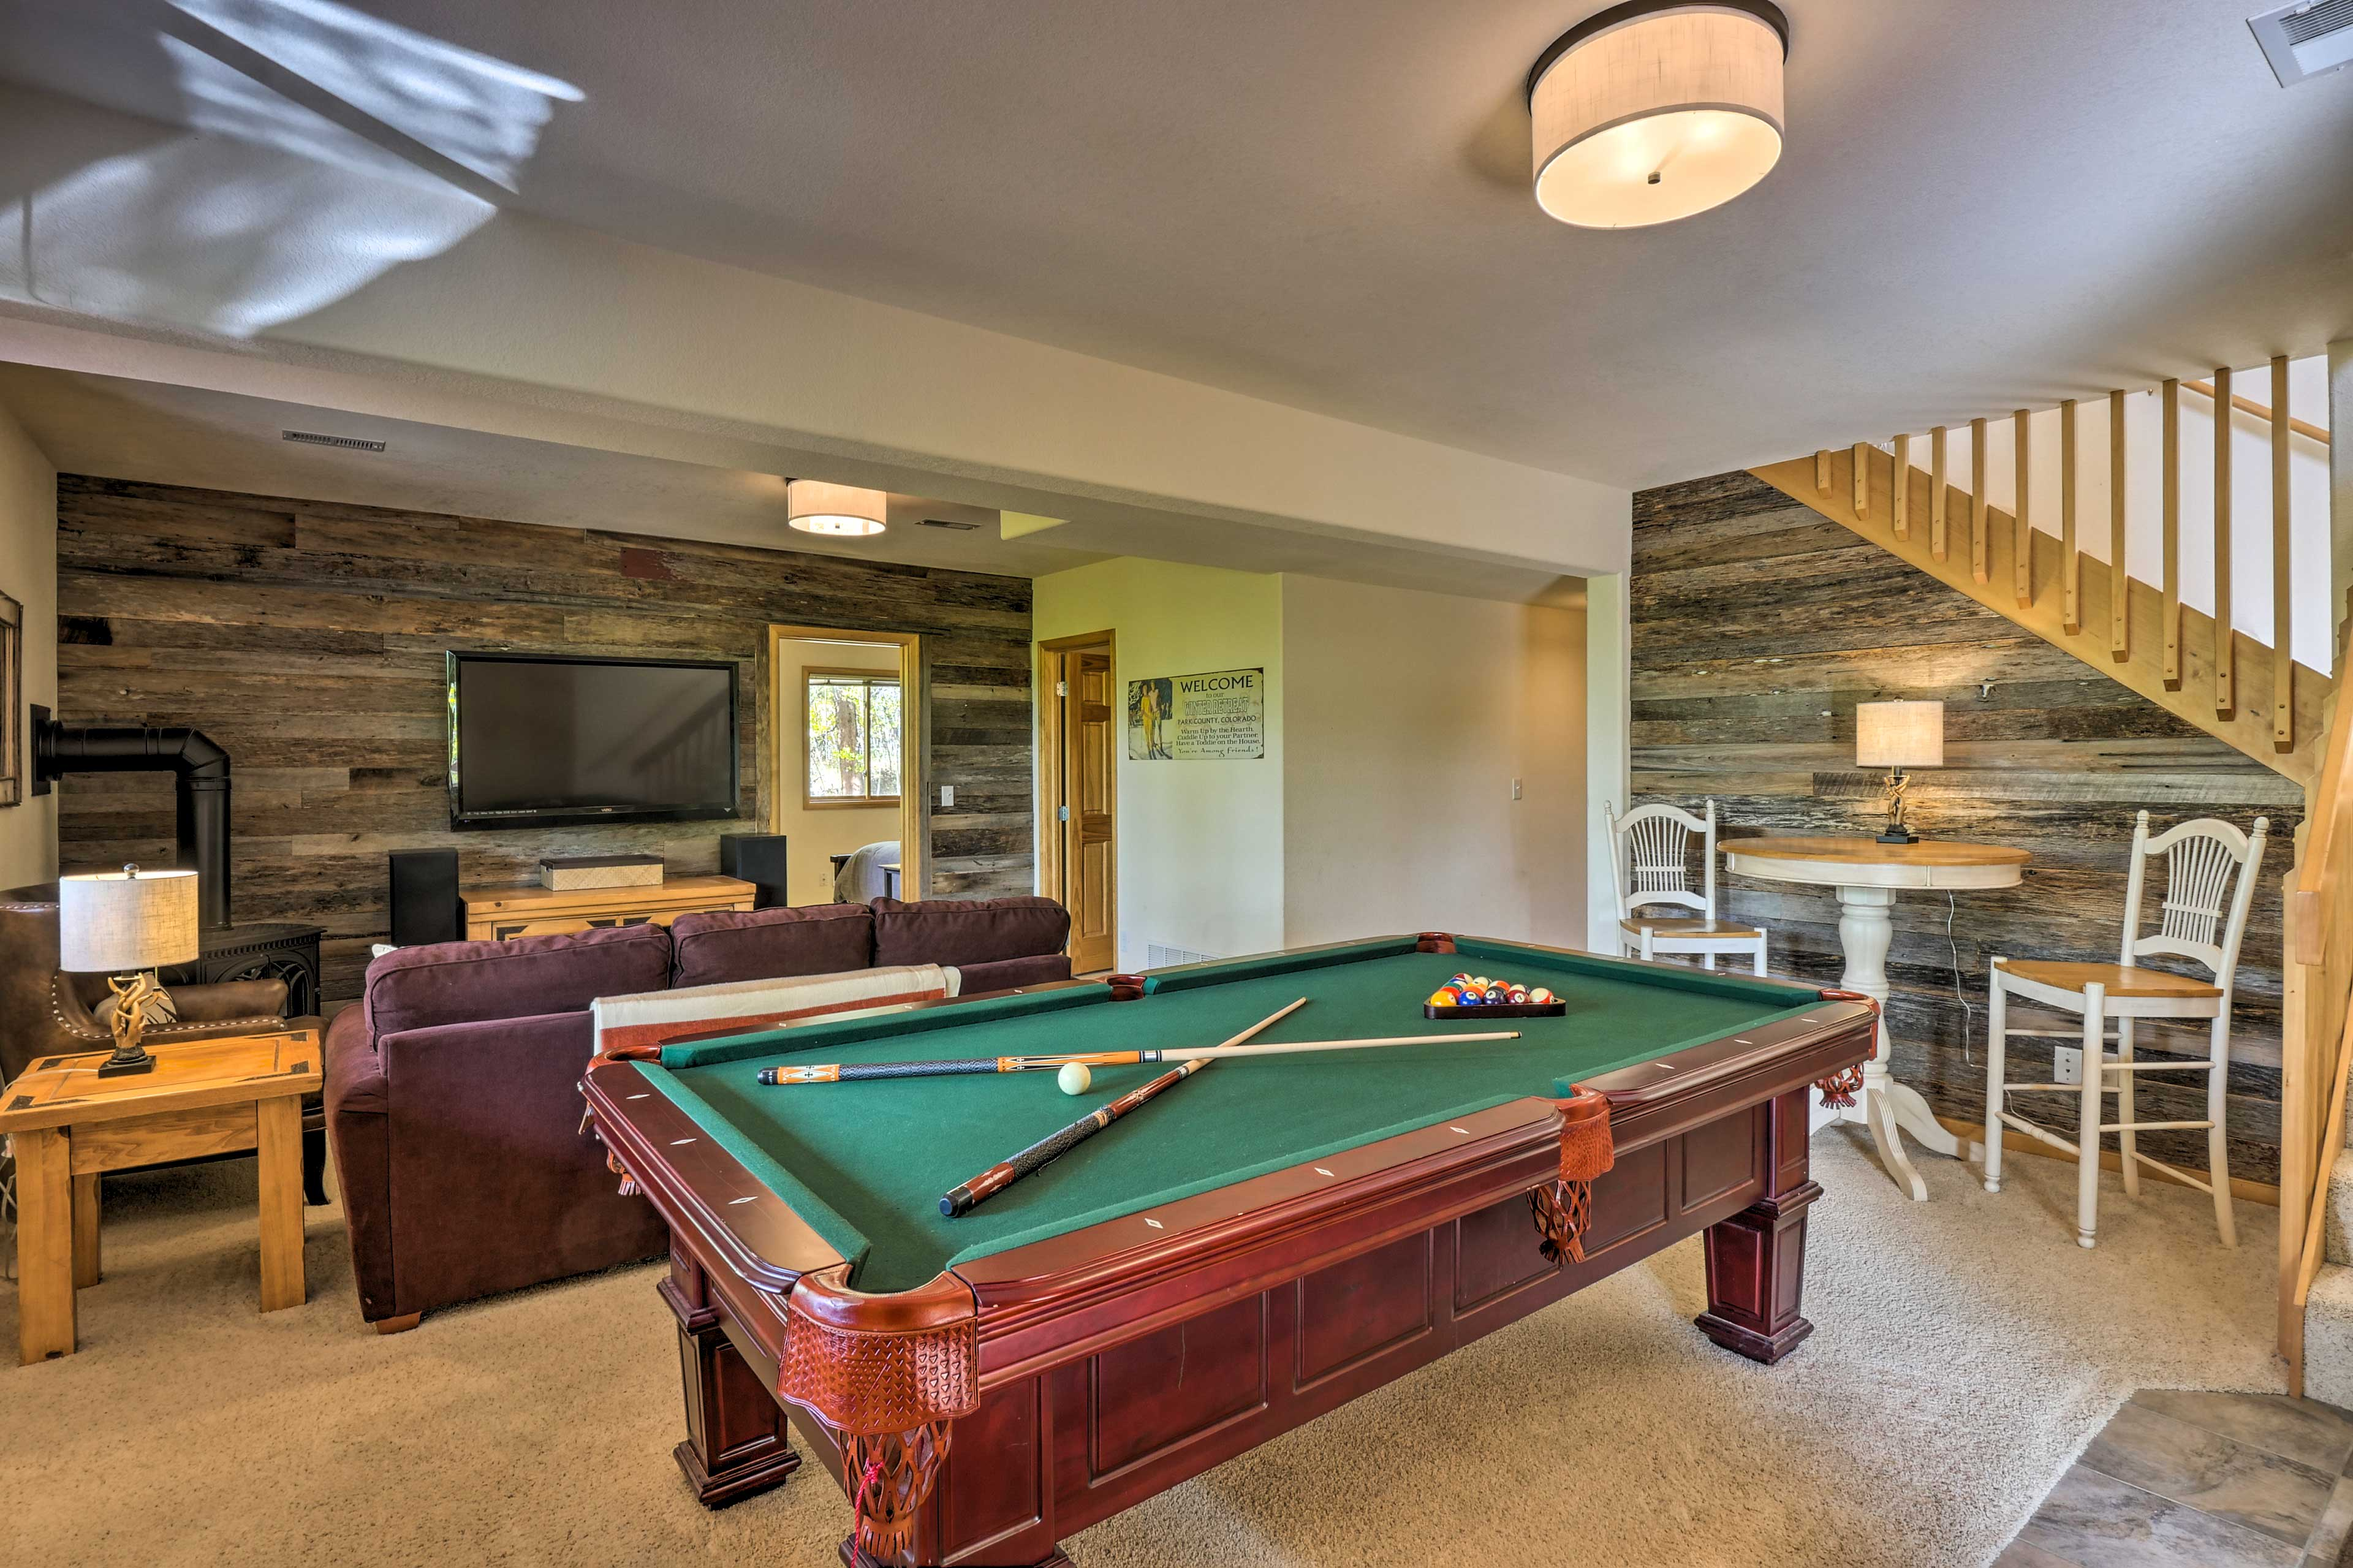 Challenge the kiddos to a pool match while watching the big game!